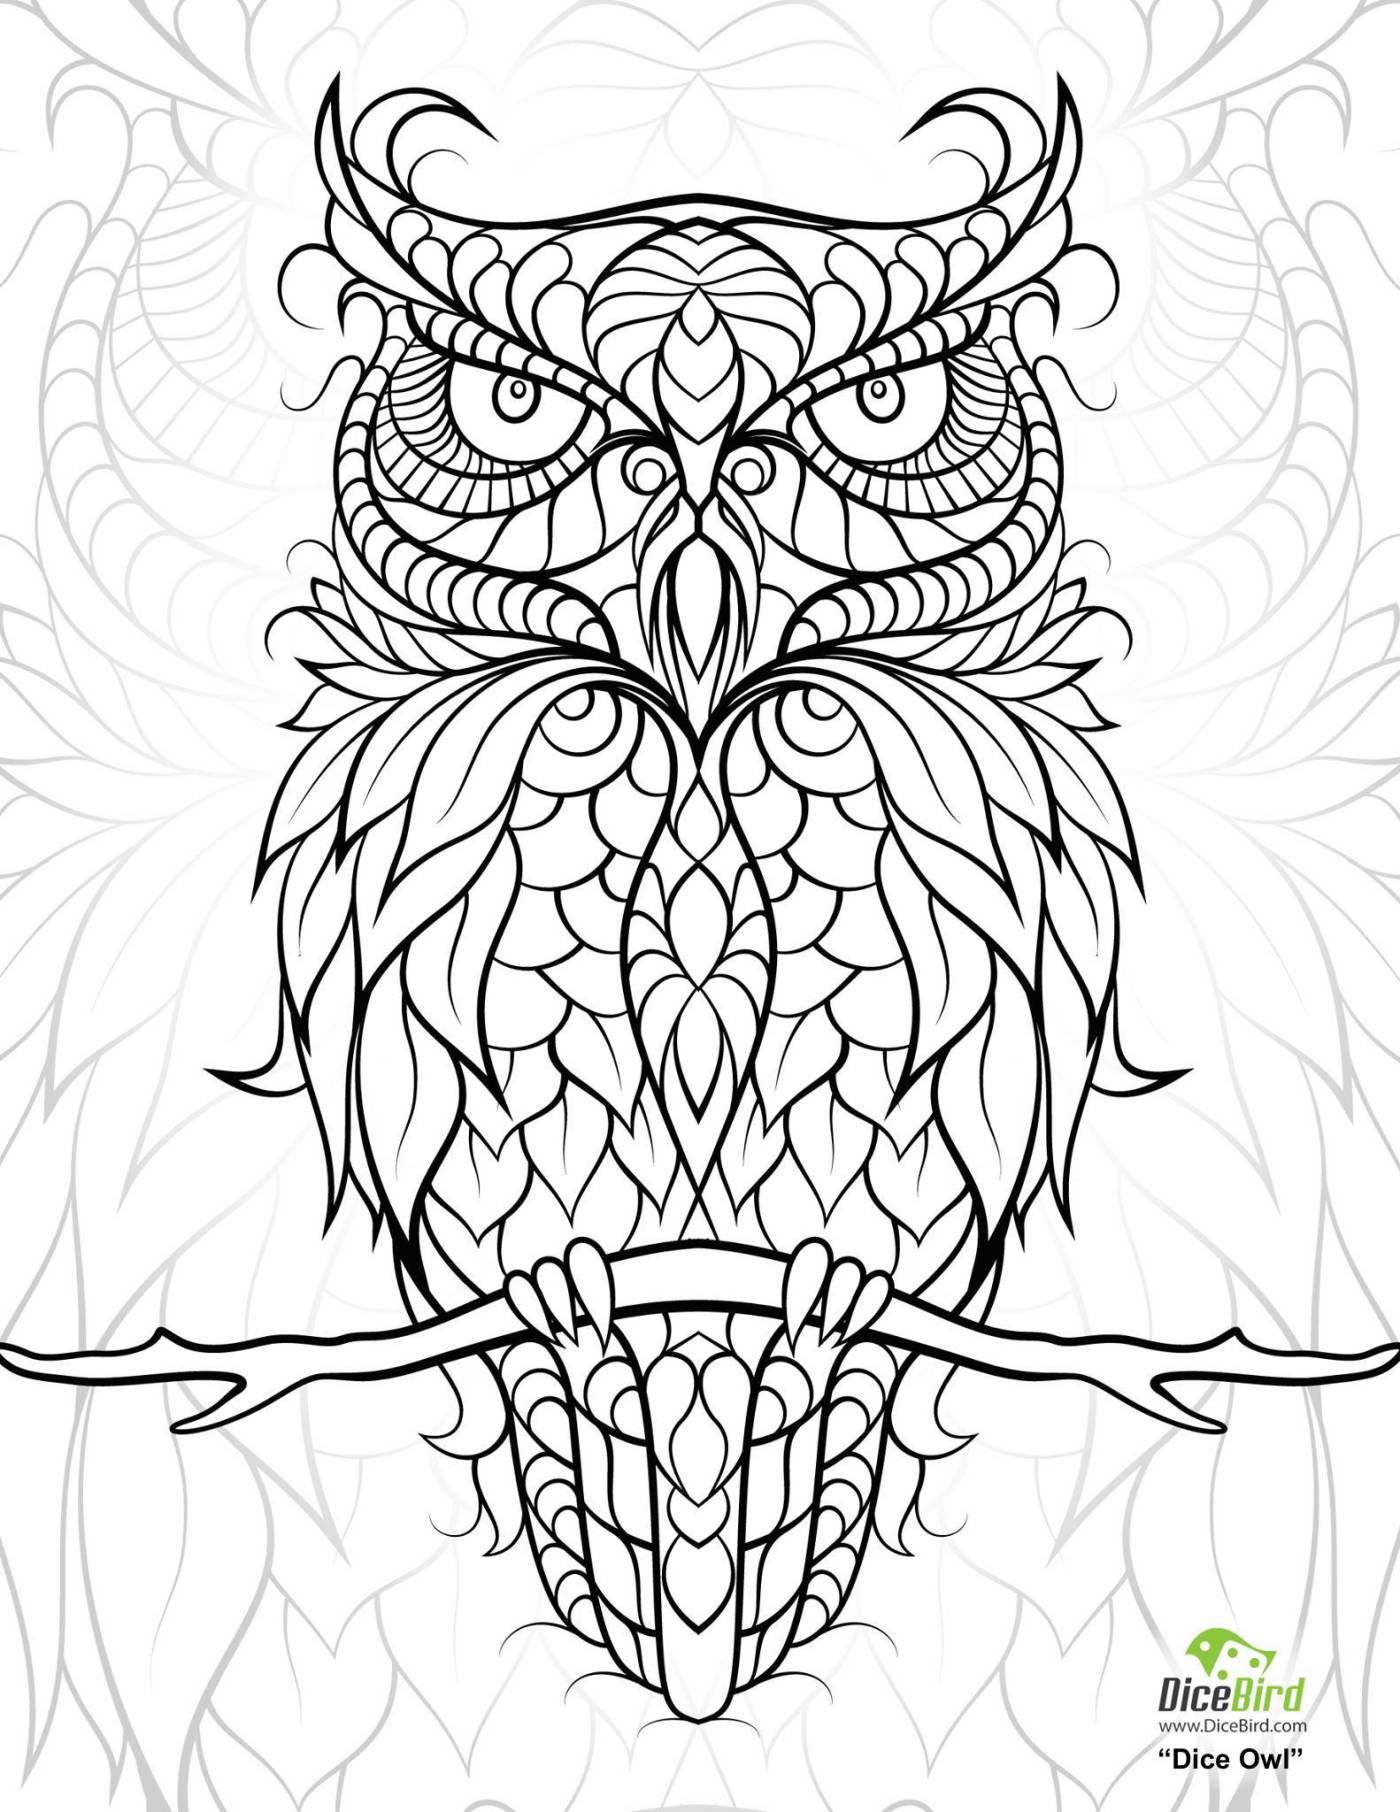 Free Coloring Pages Adult Coloring Worldwide Free S Le